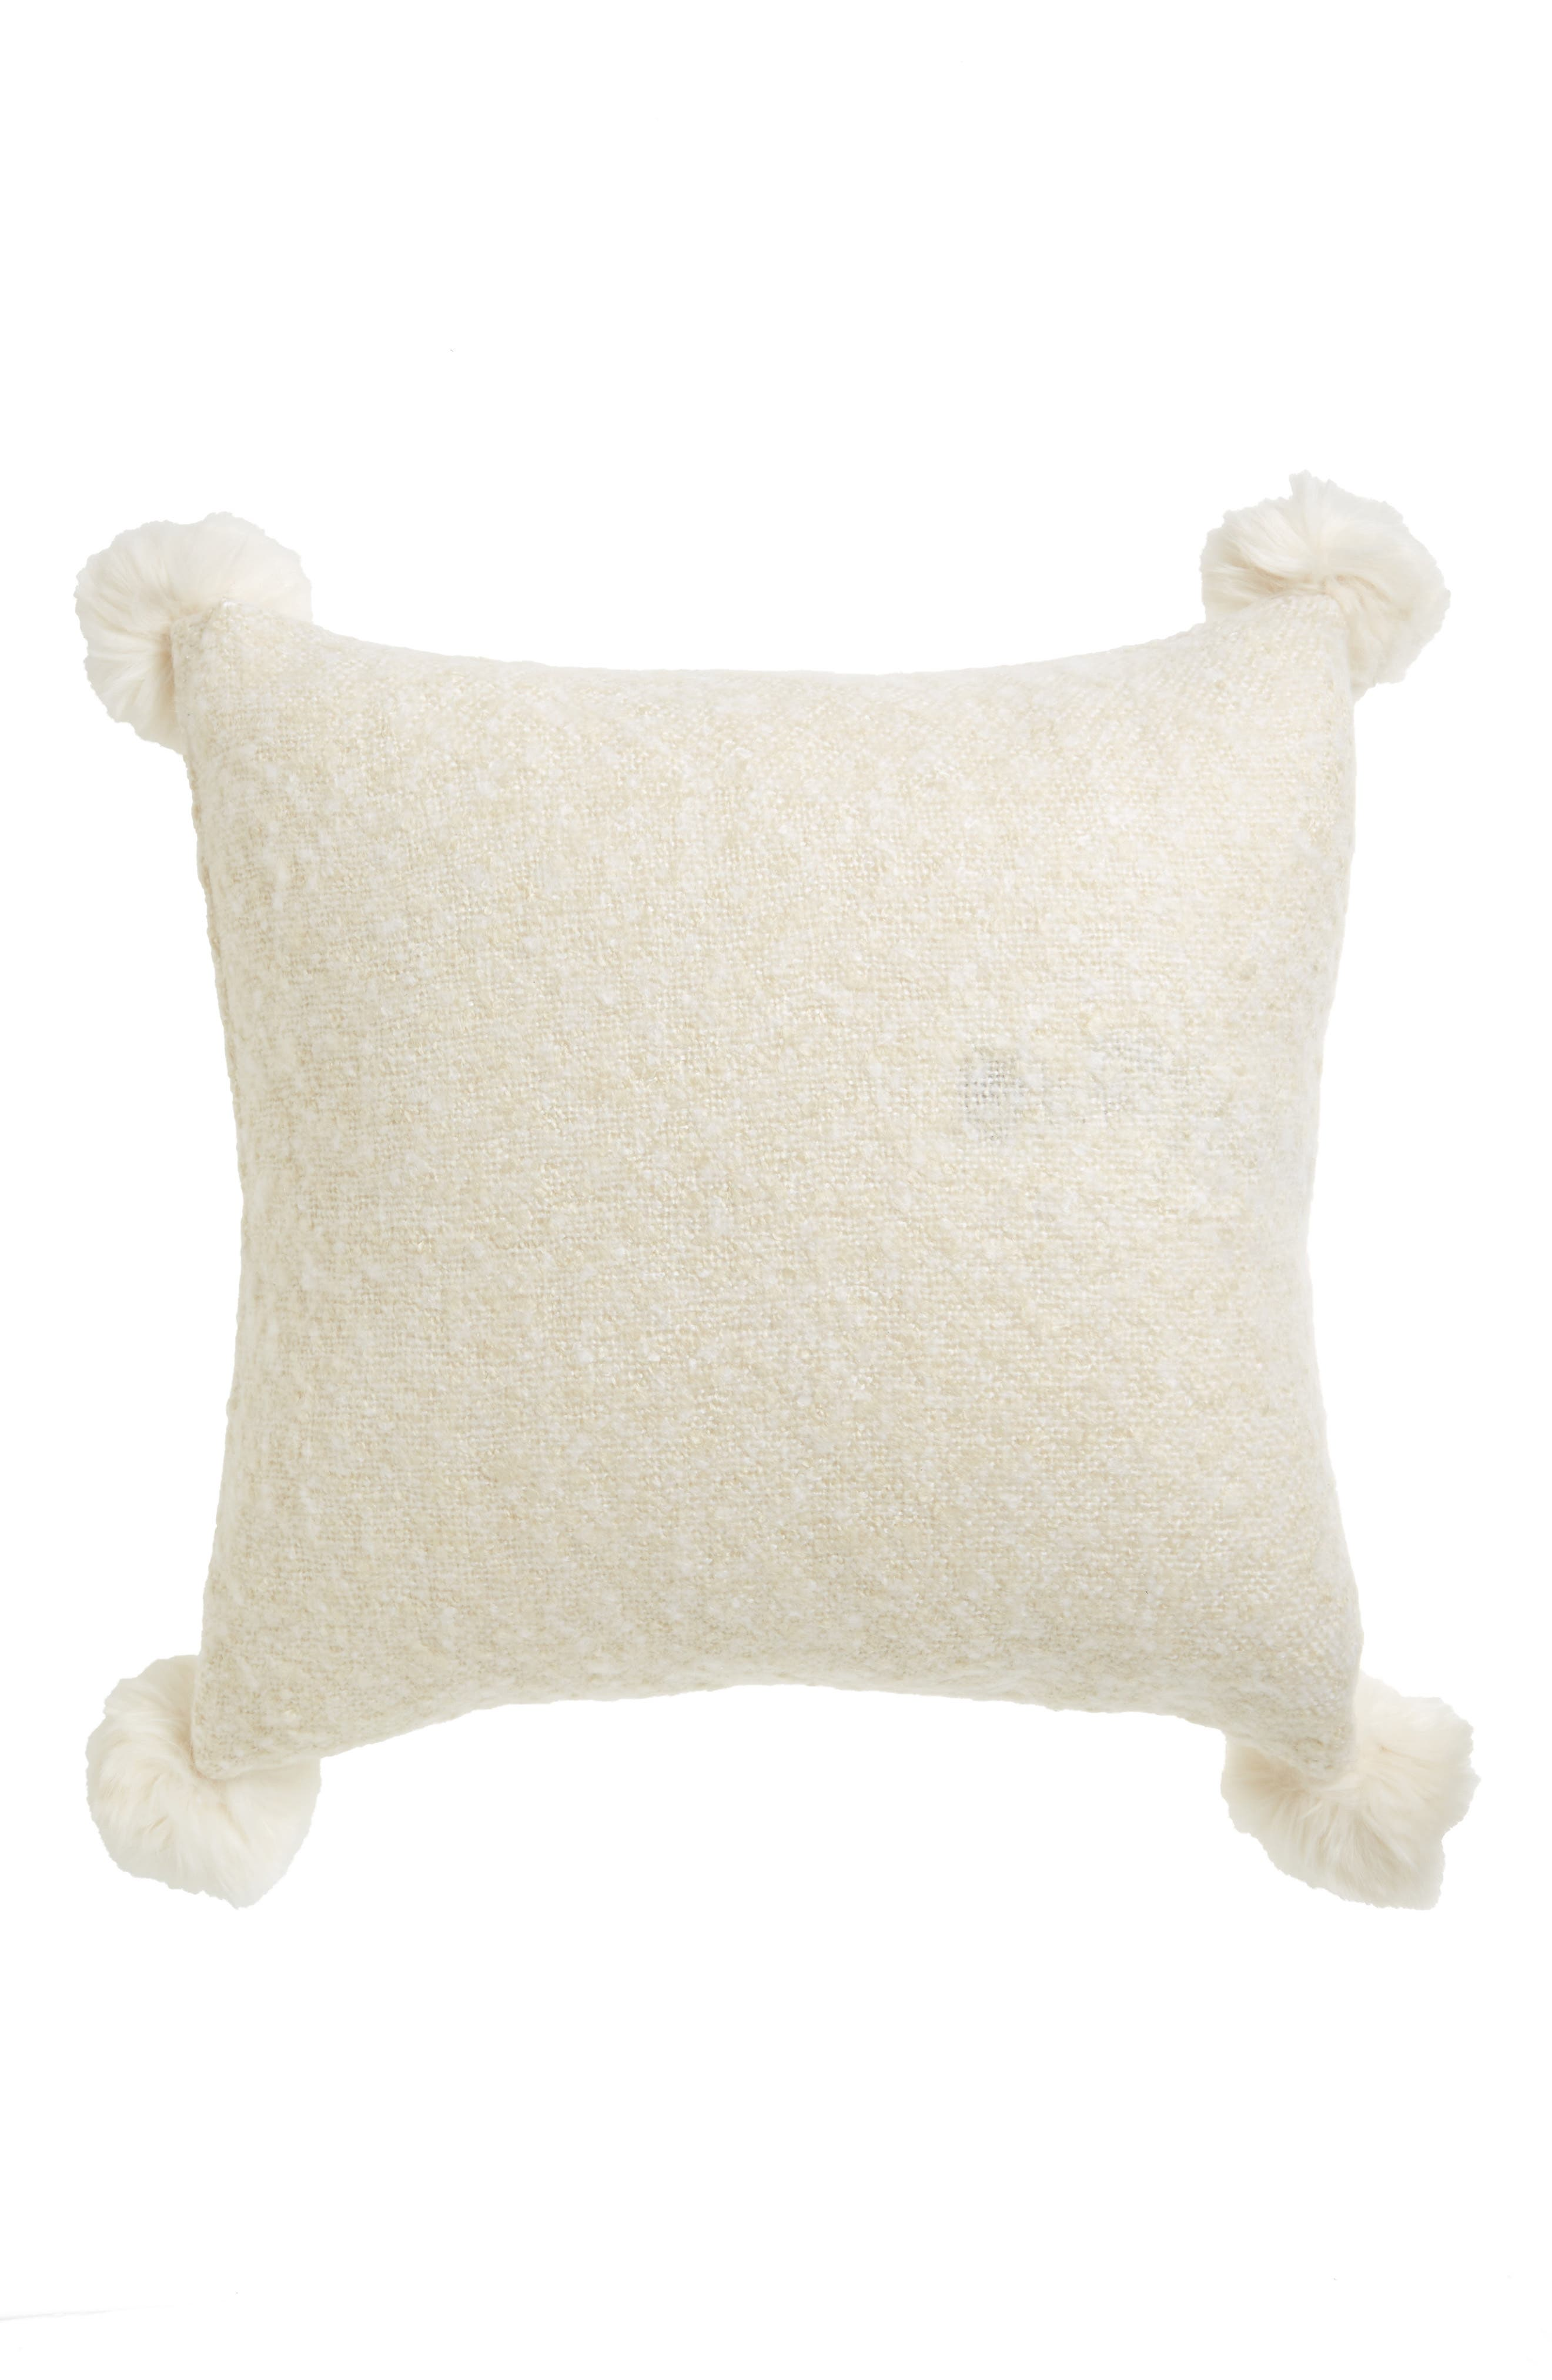 Brushed Accent Pillow with Pompoms,                             Alternate thumbnail 2, color,                             900